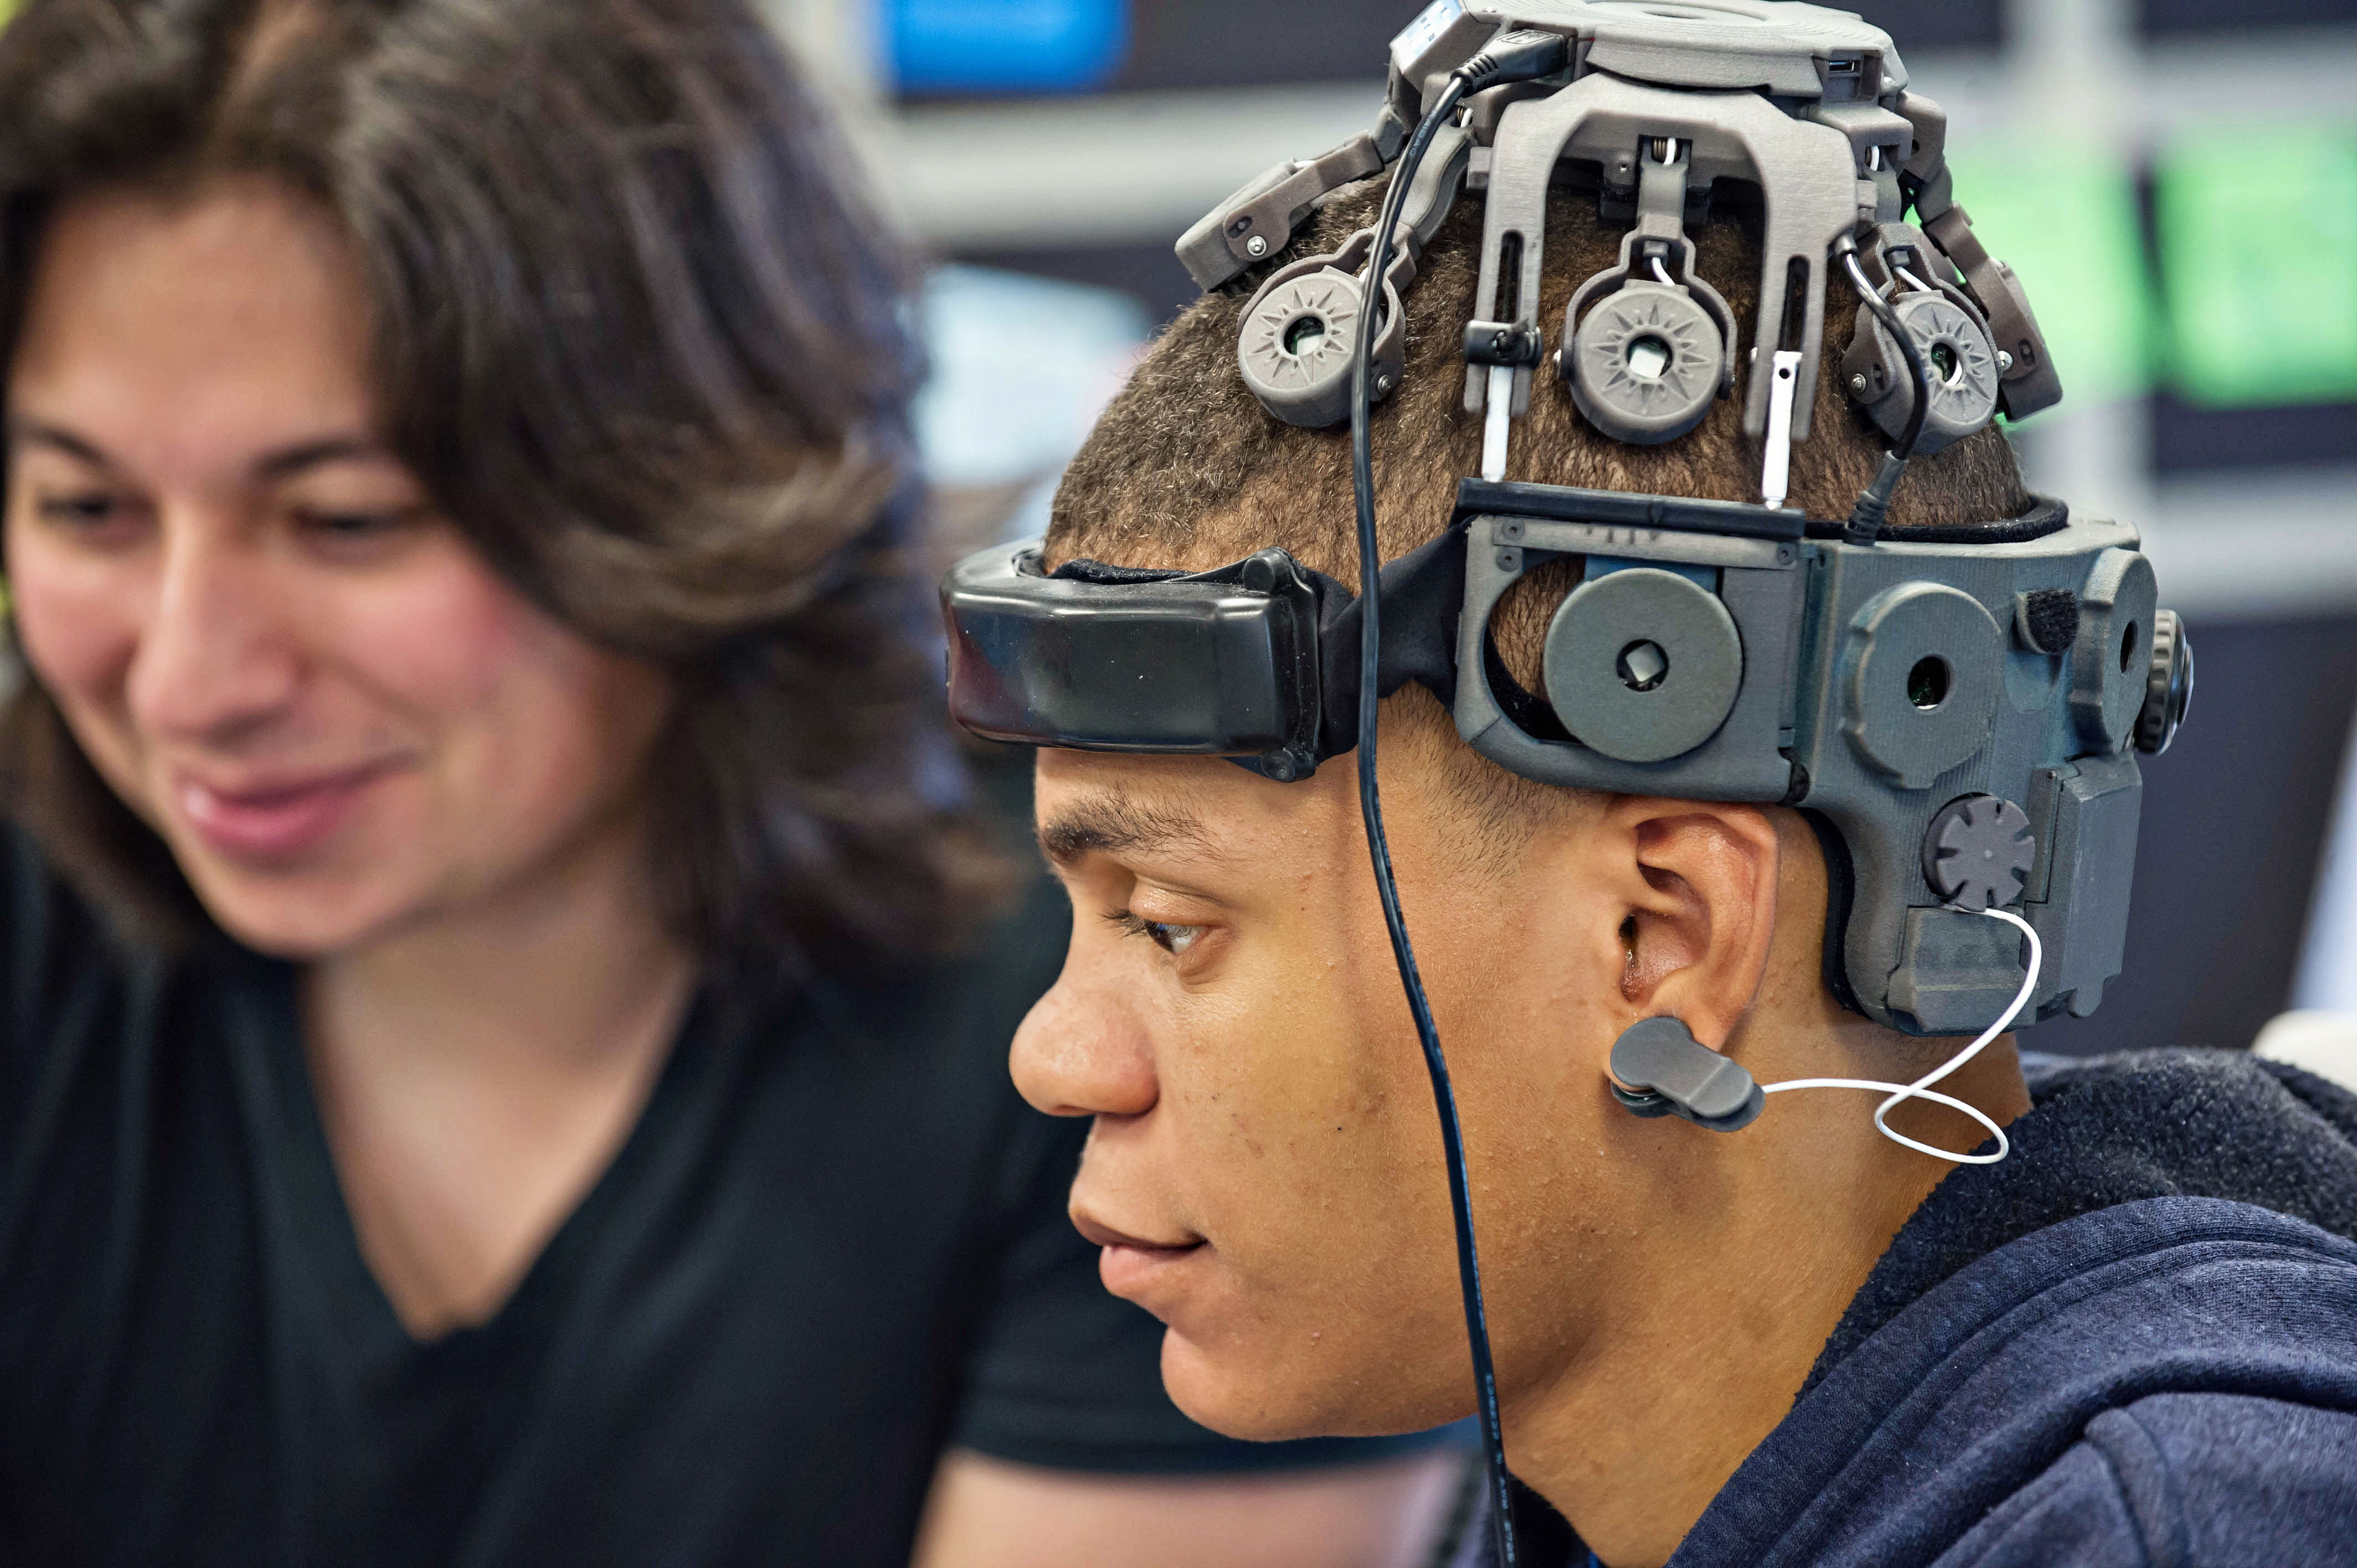 Controlling Vr With Your Mind Mit Technology Review Brain Like Computers Soon To Become A Reality